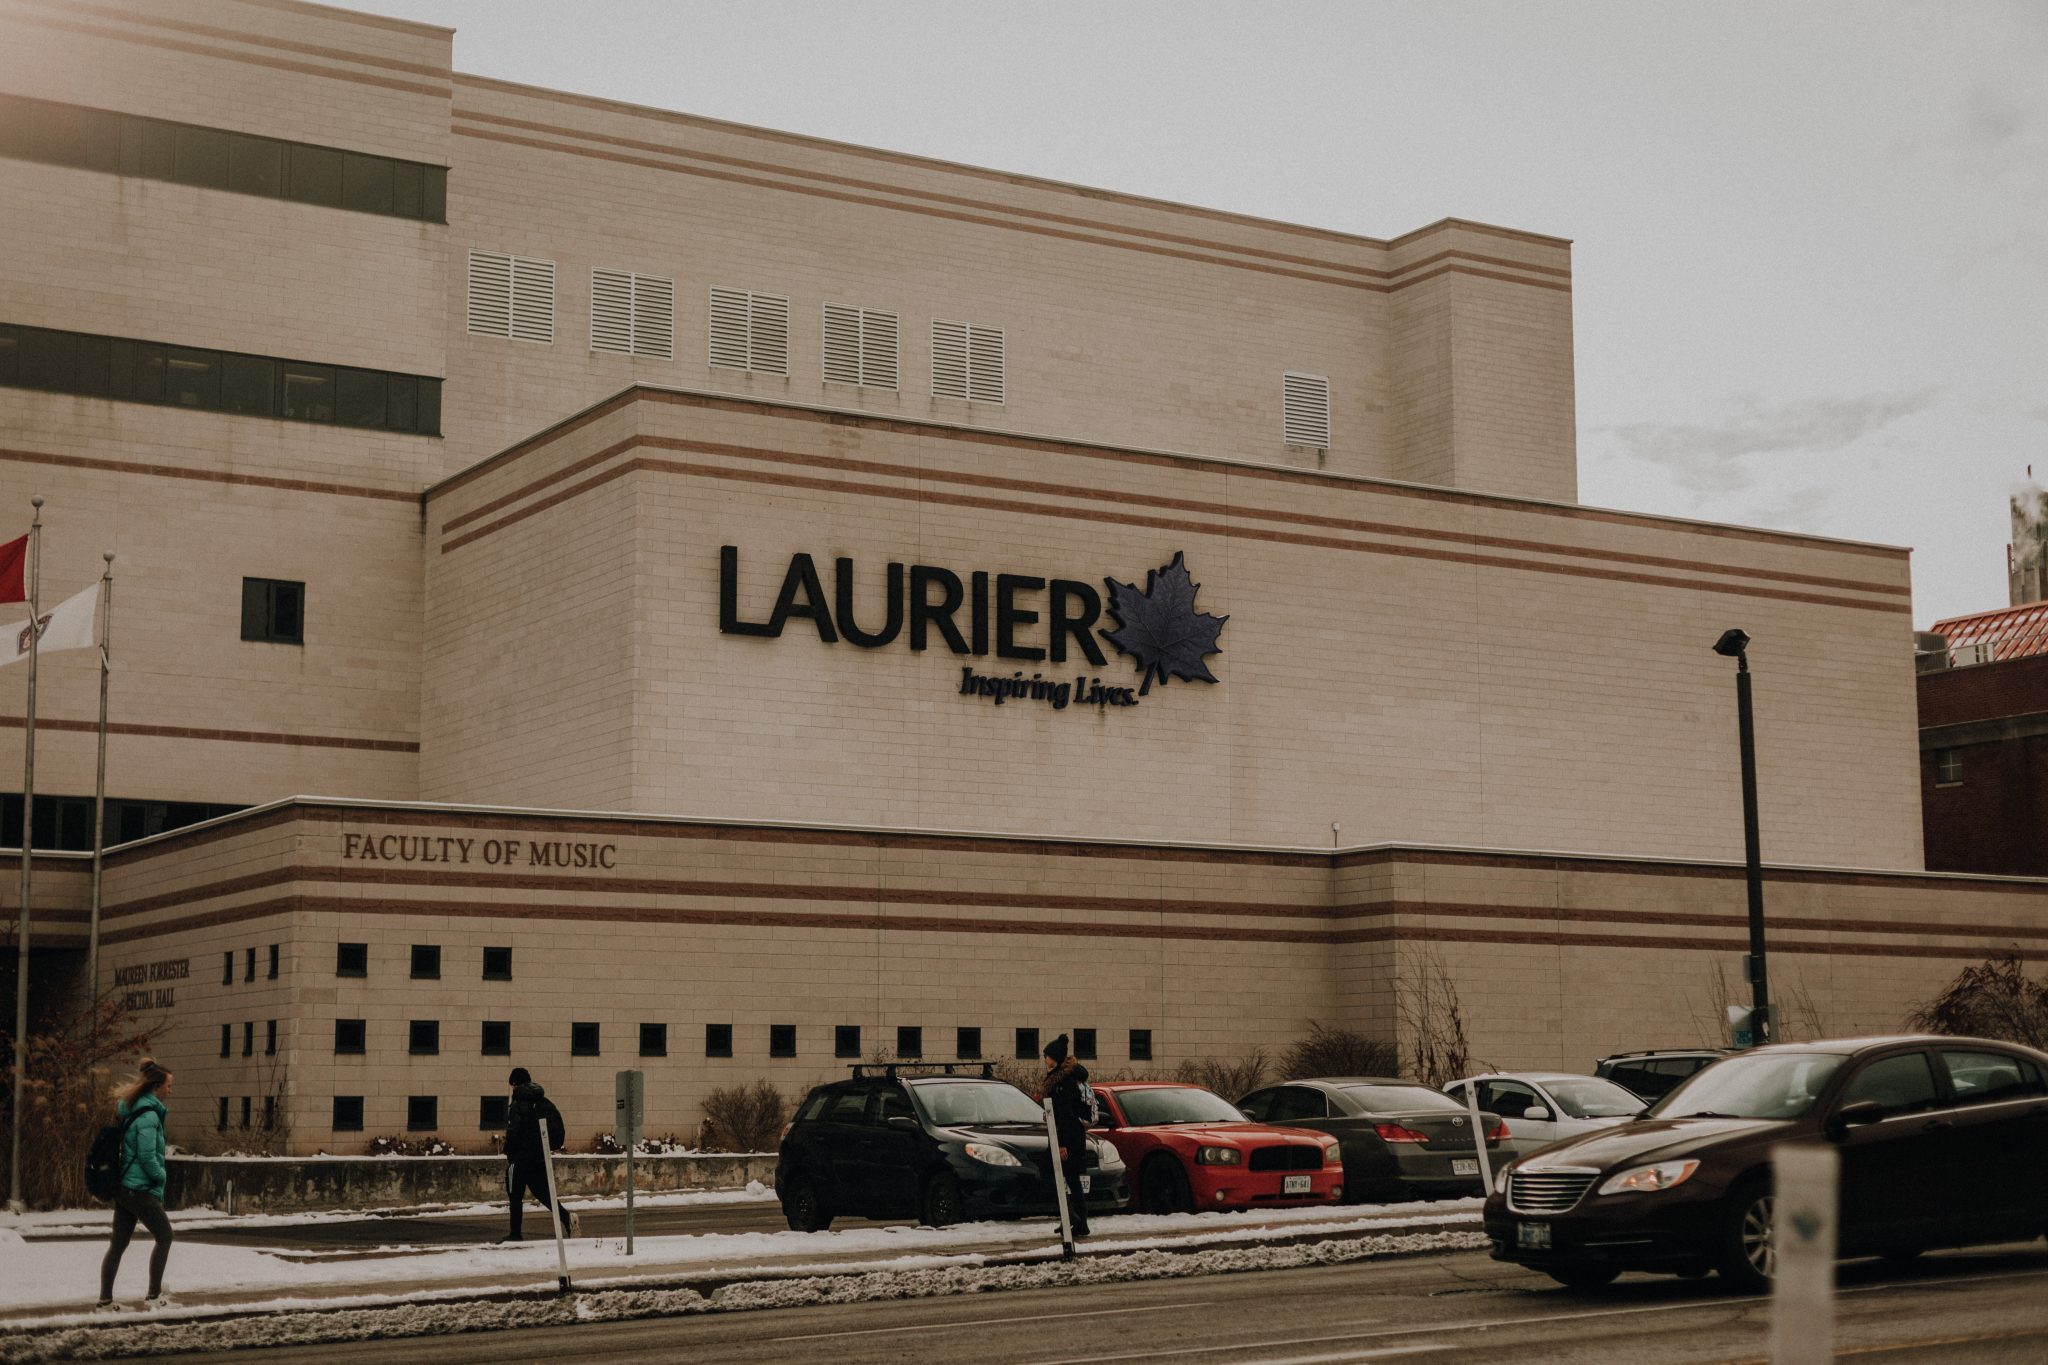 Laurier confirms six new COVID-19 cases, total number of cases at eleven